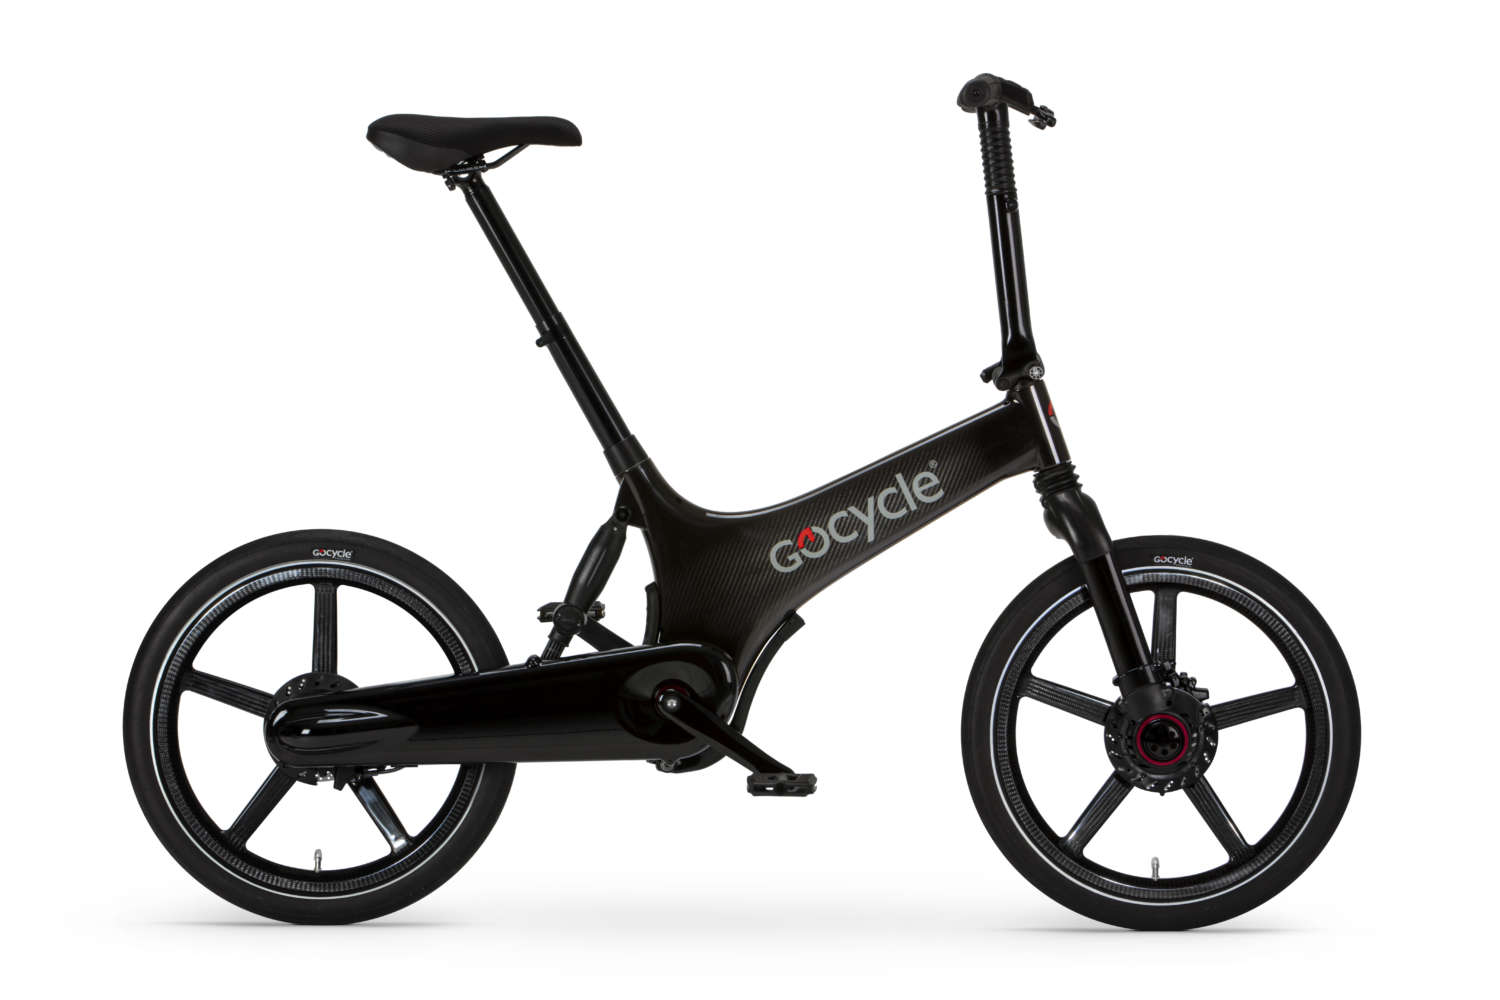 Gocycle G3Carbon